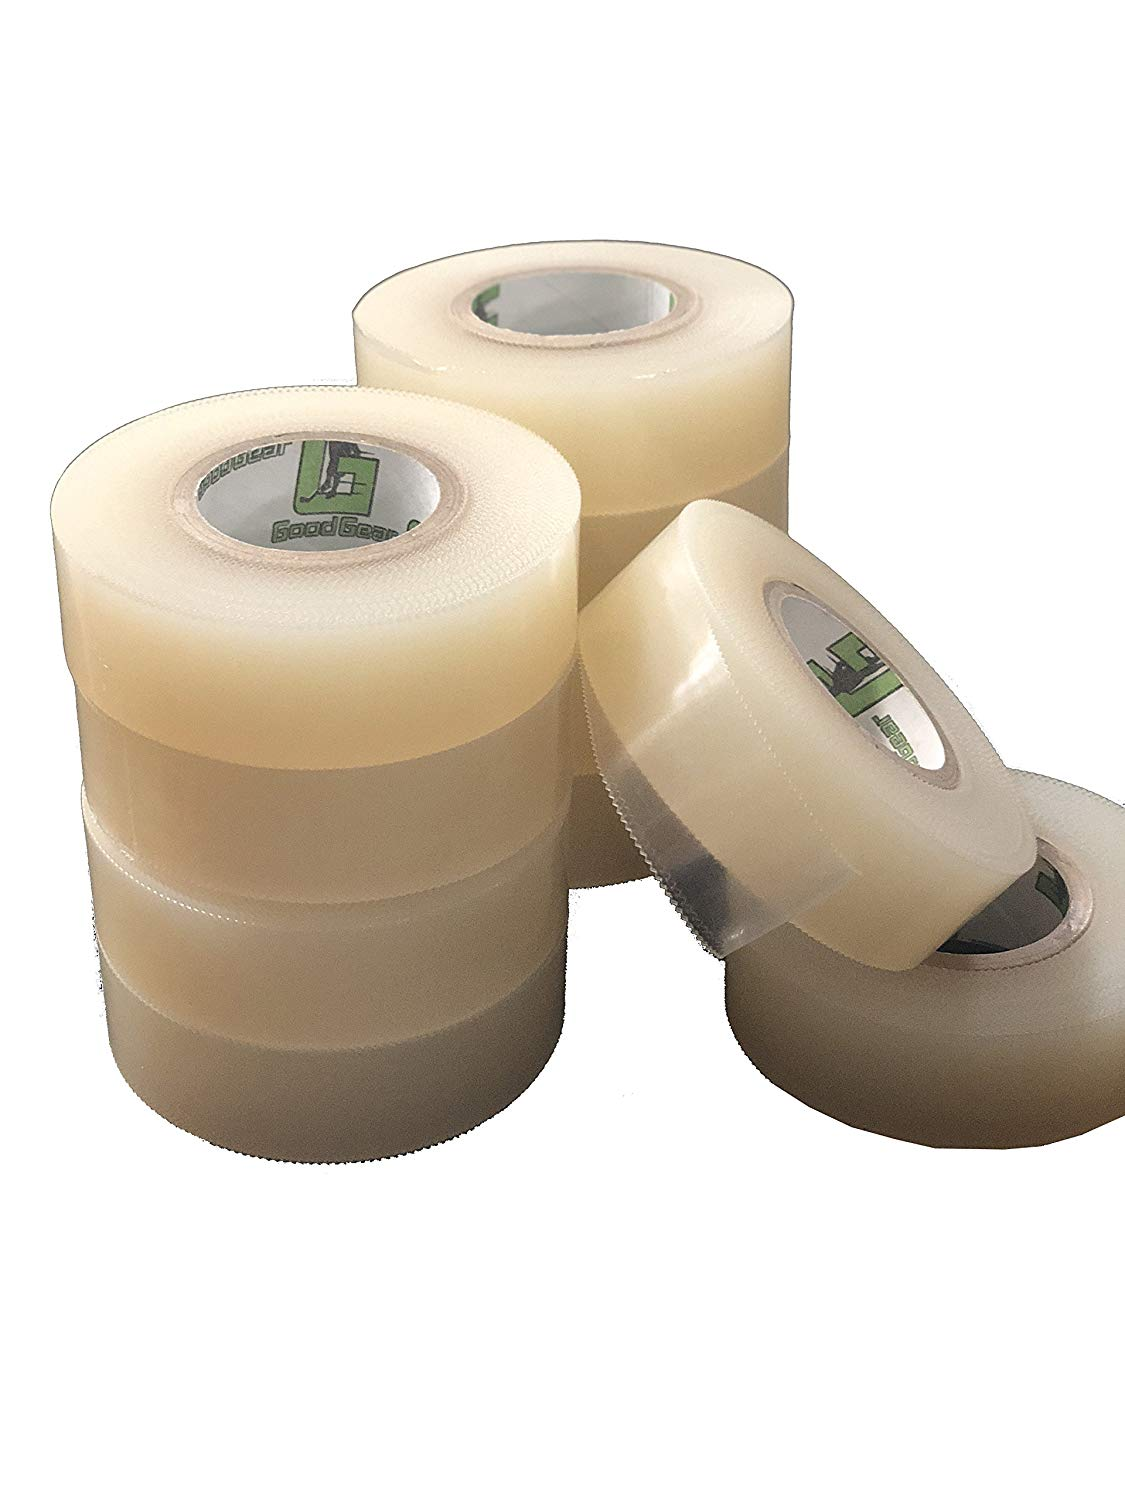 G Good Gear Clear Hockey Tape.(10 Pack) Poly Sock Tape. Easy Stretch, Easy Rip. SportsTape - Made in North America for Hockey.